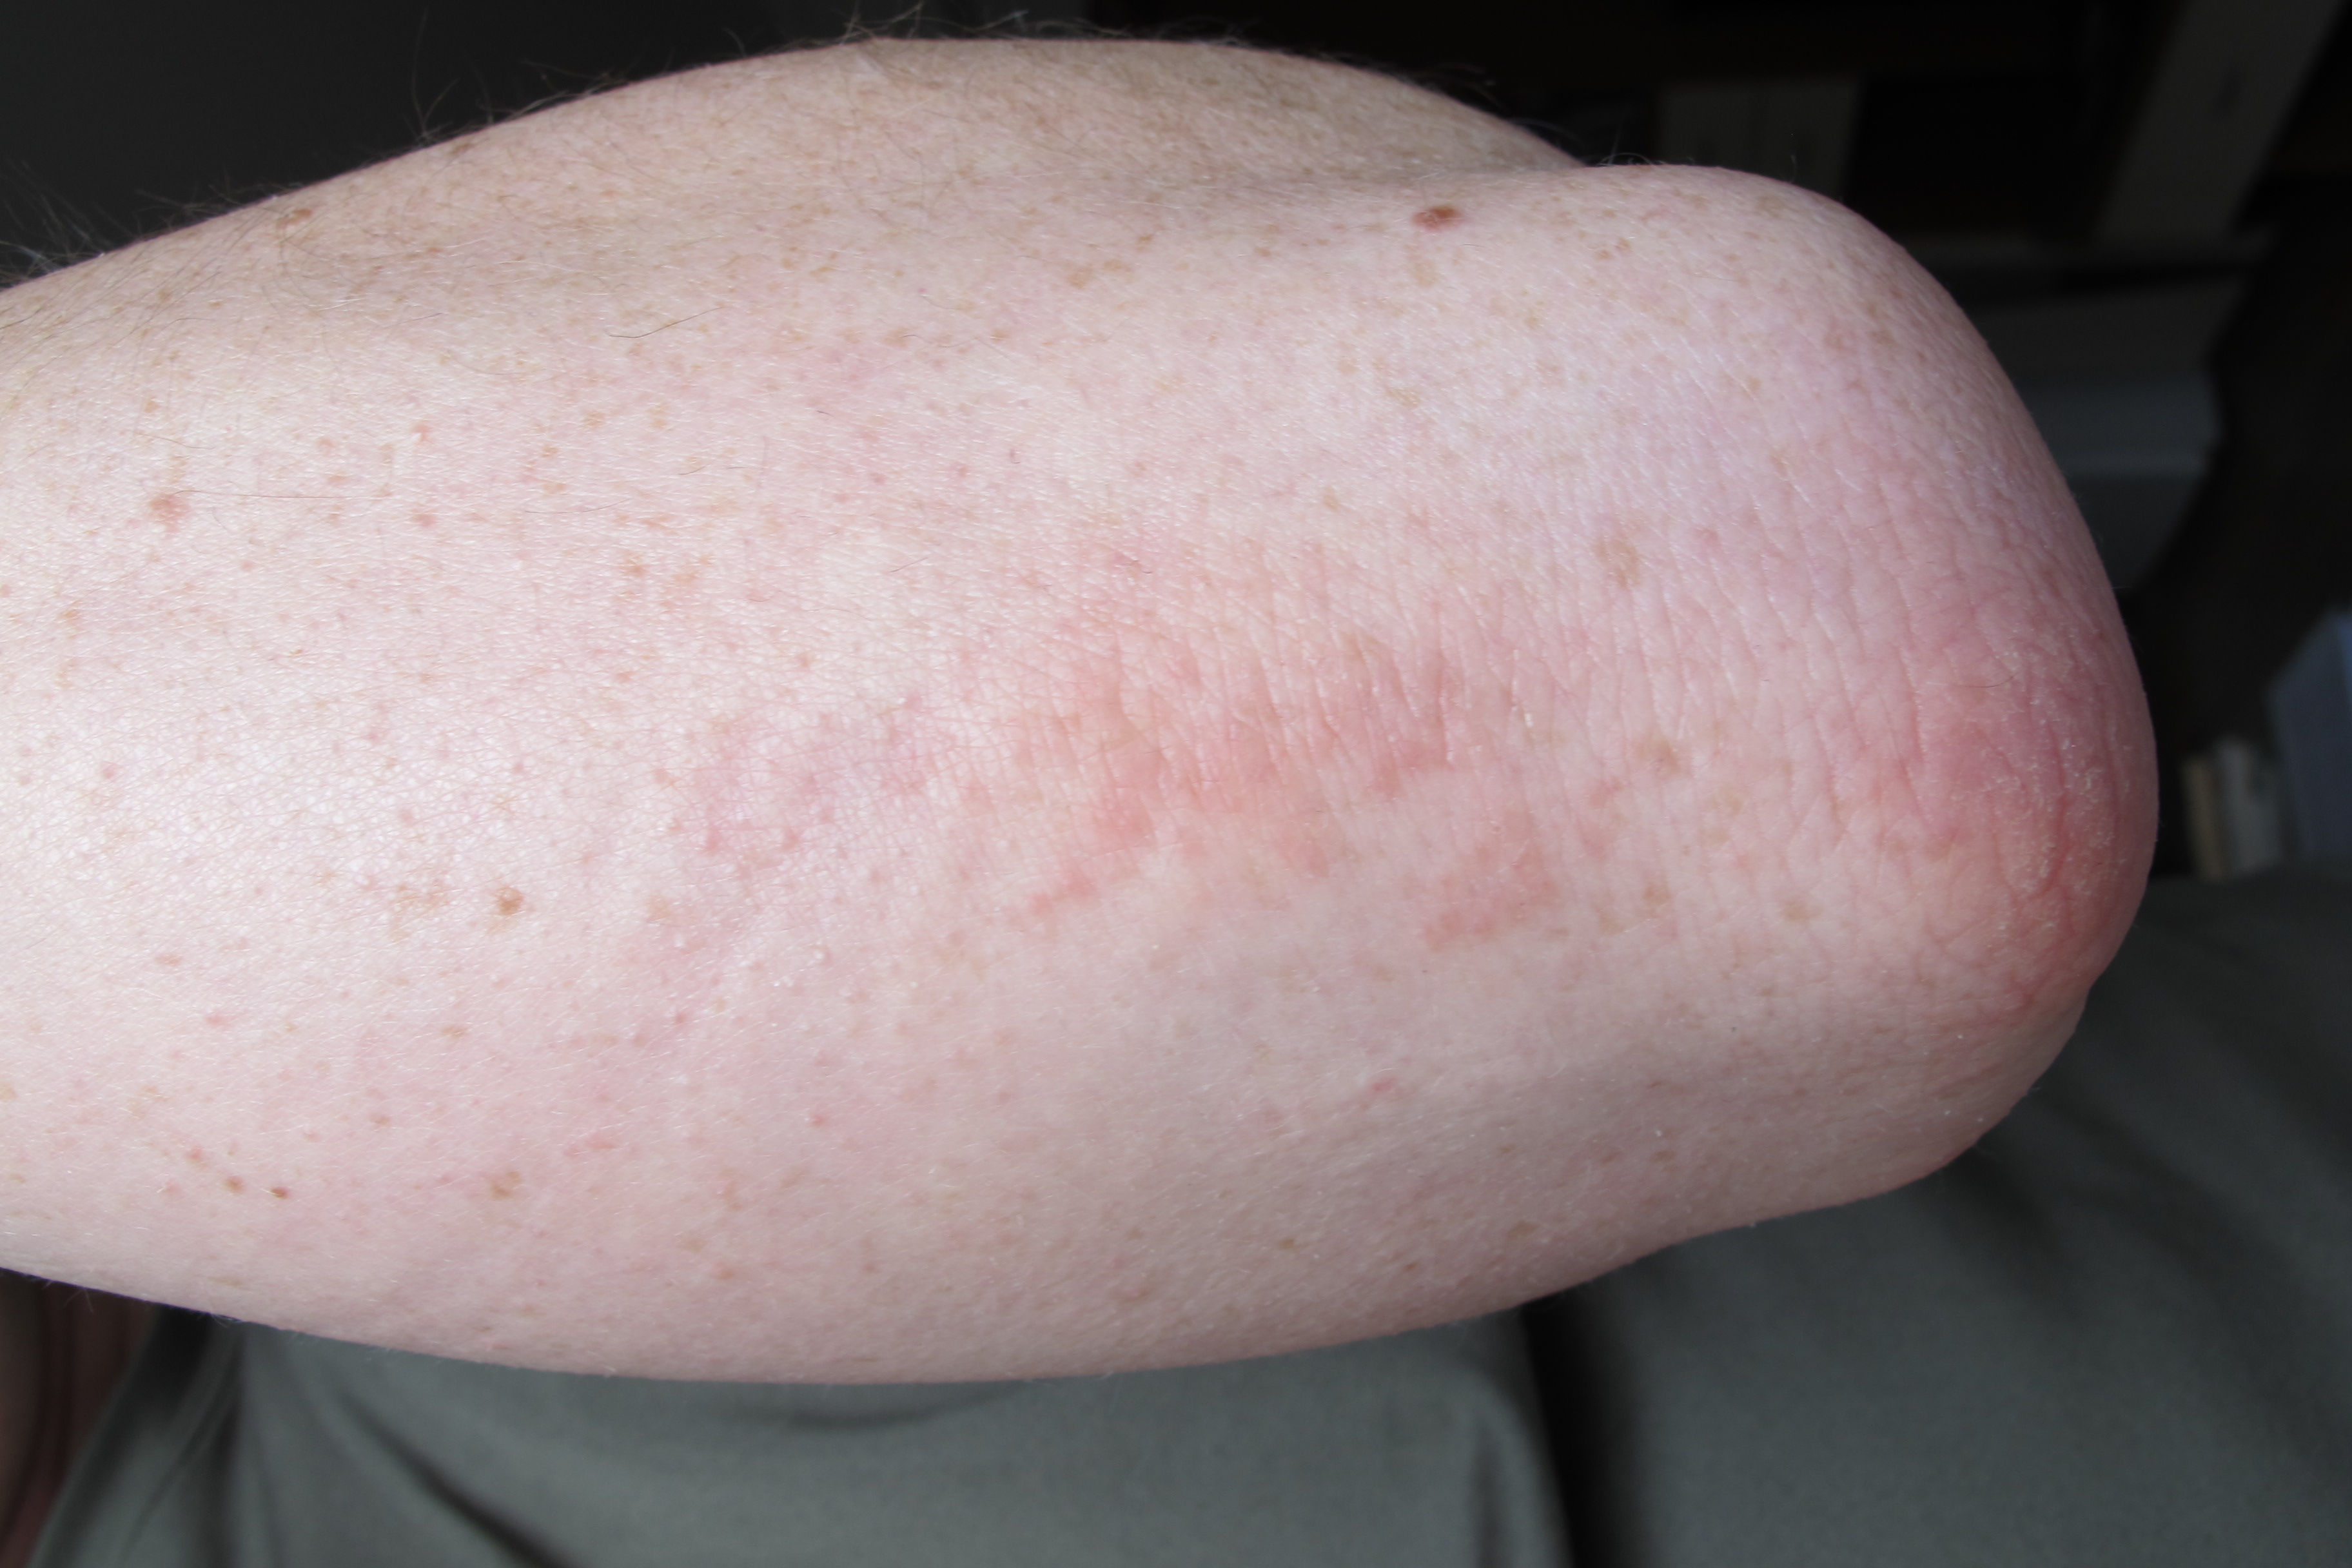 Rash on Elbow, Itchy, Pictures, Red Bumpy Rash Inside ...